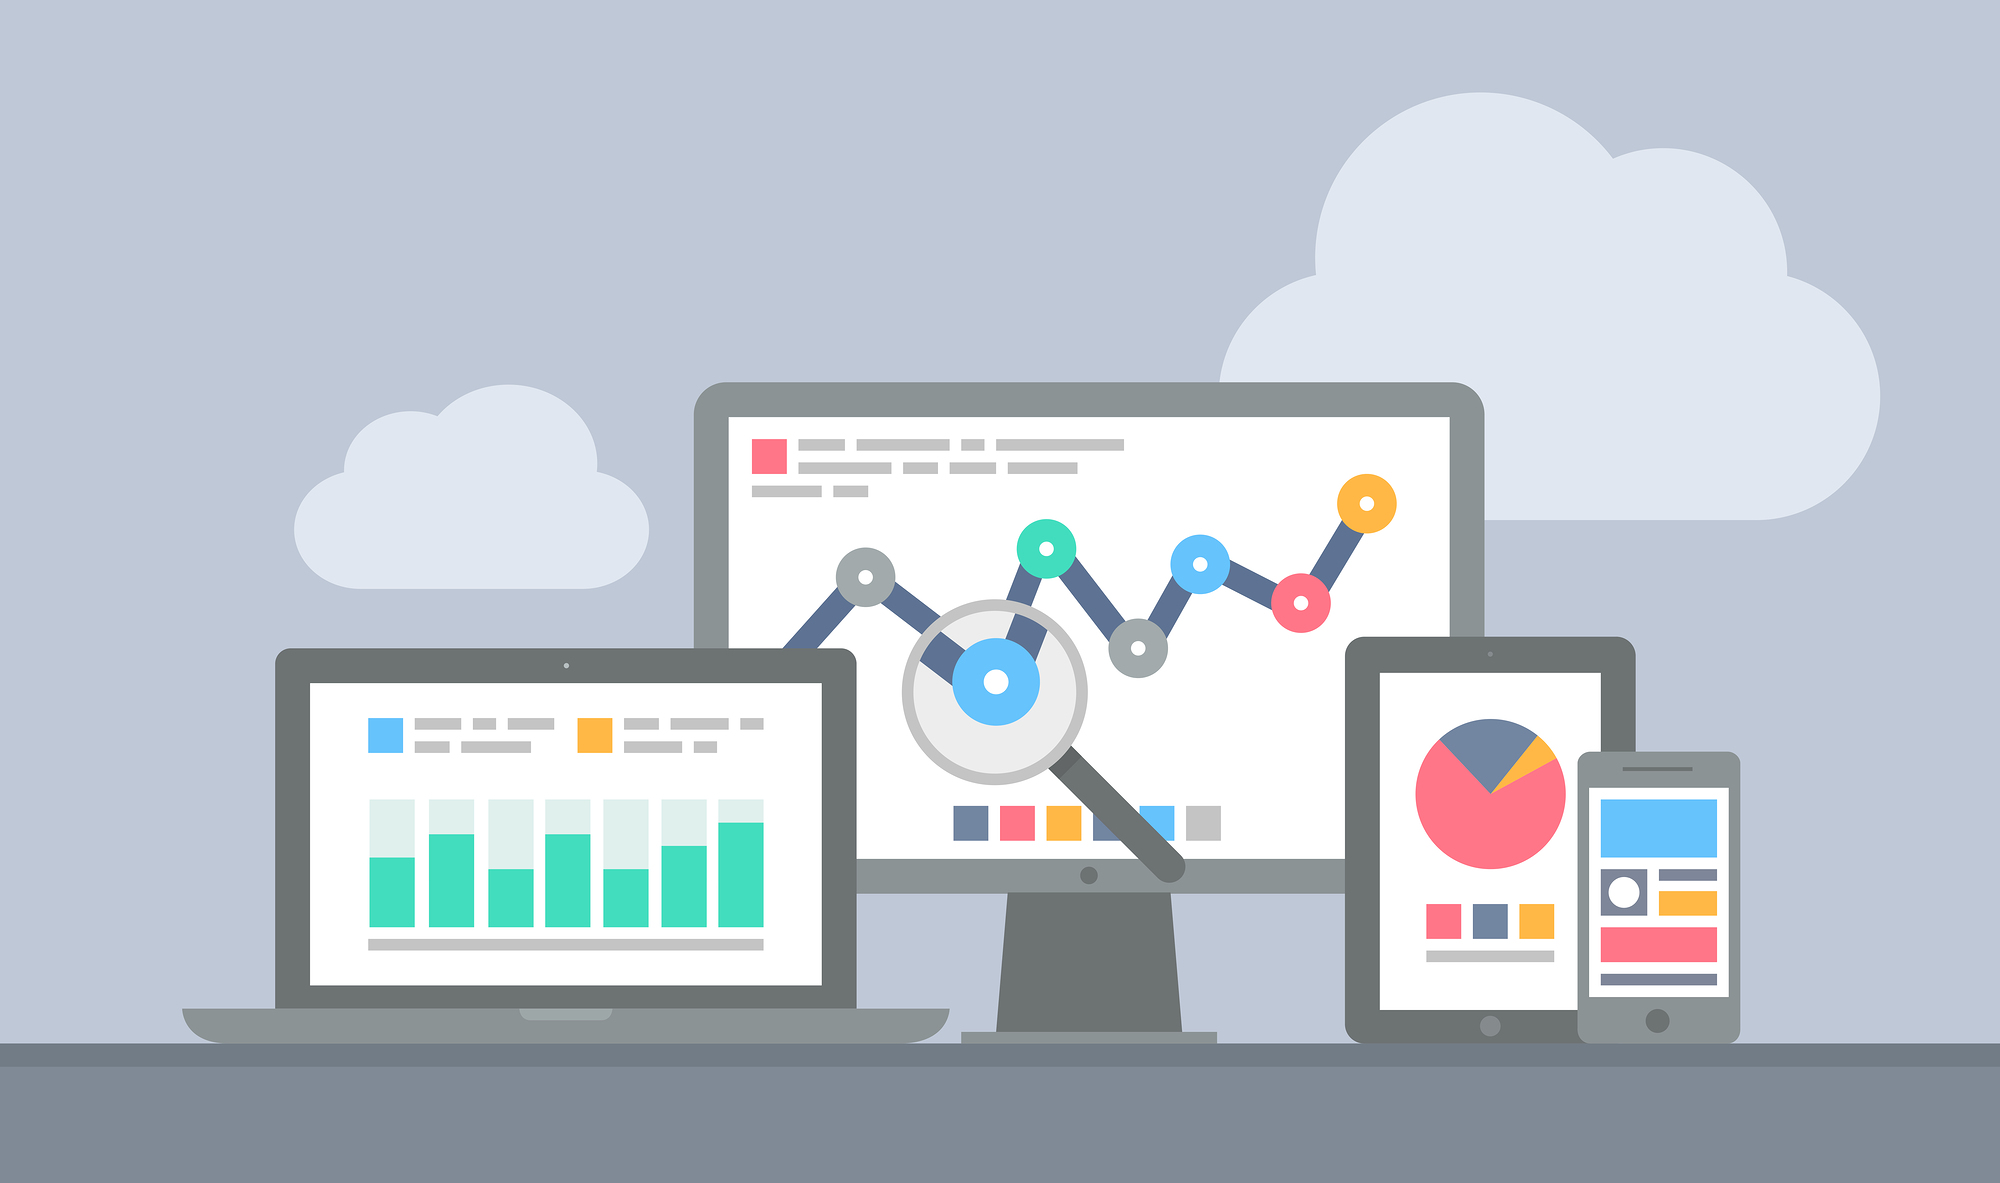 Flat design modern vector illustration concept of website analytics and computing data analysis using modern electronic and apple mobile devices. Isolated on grey background